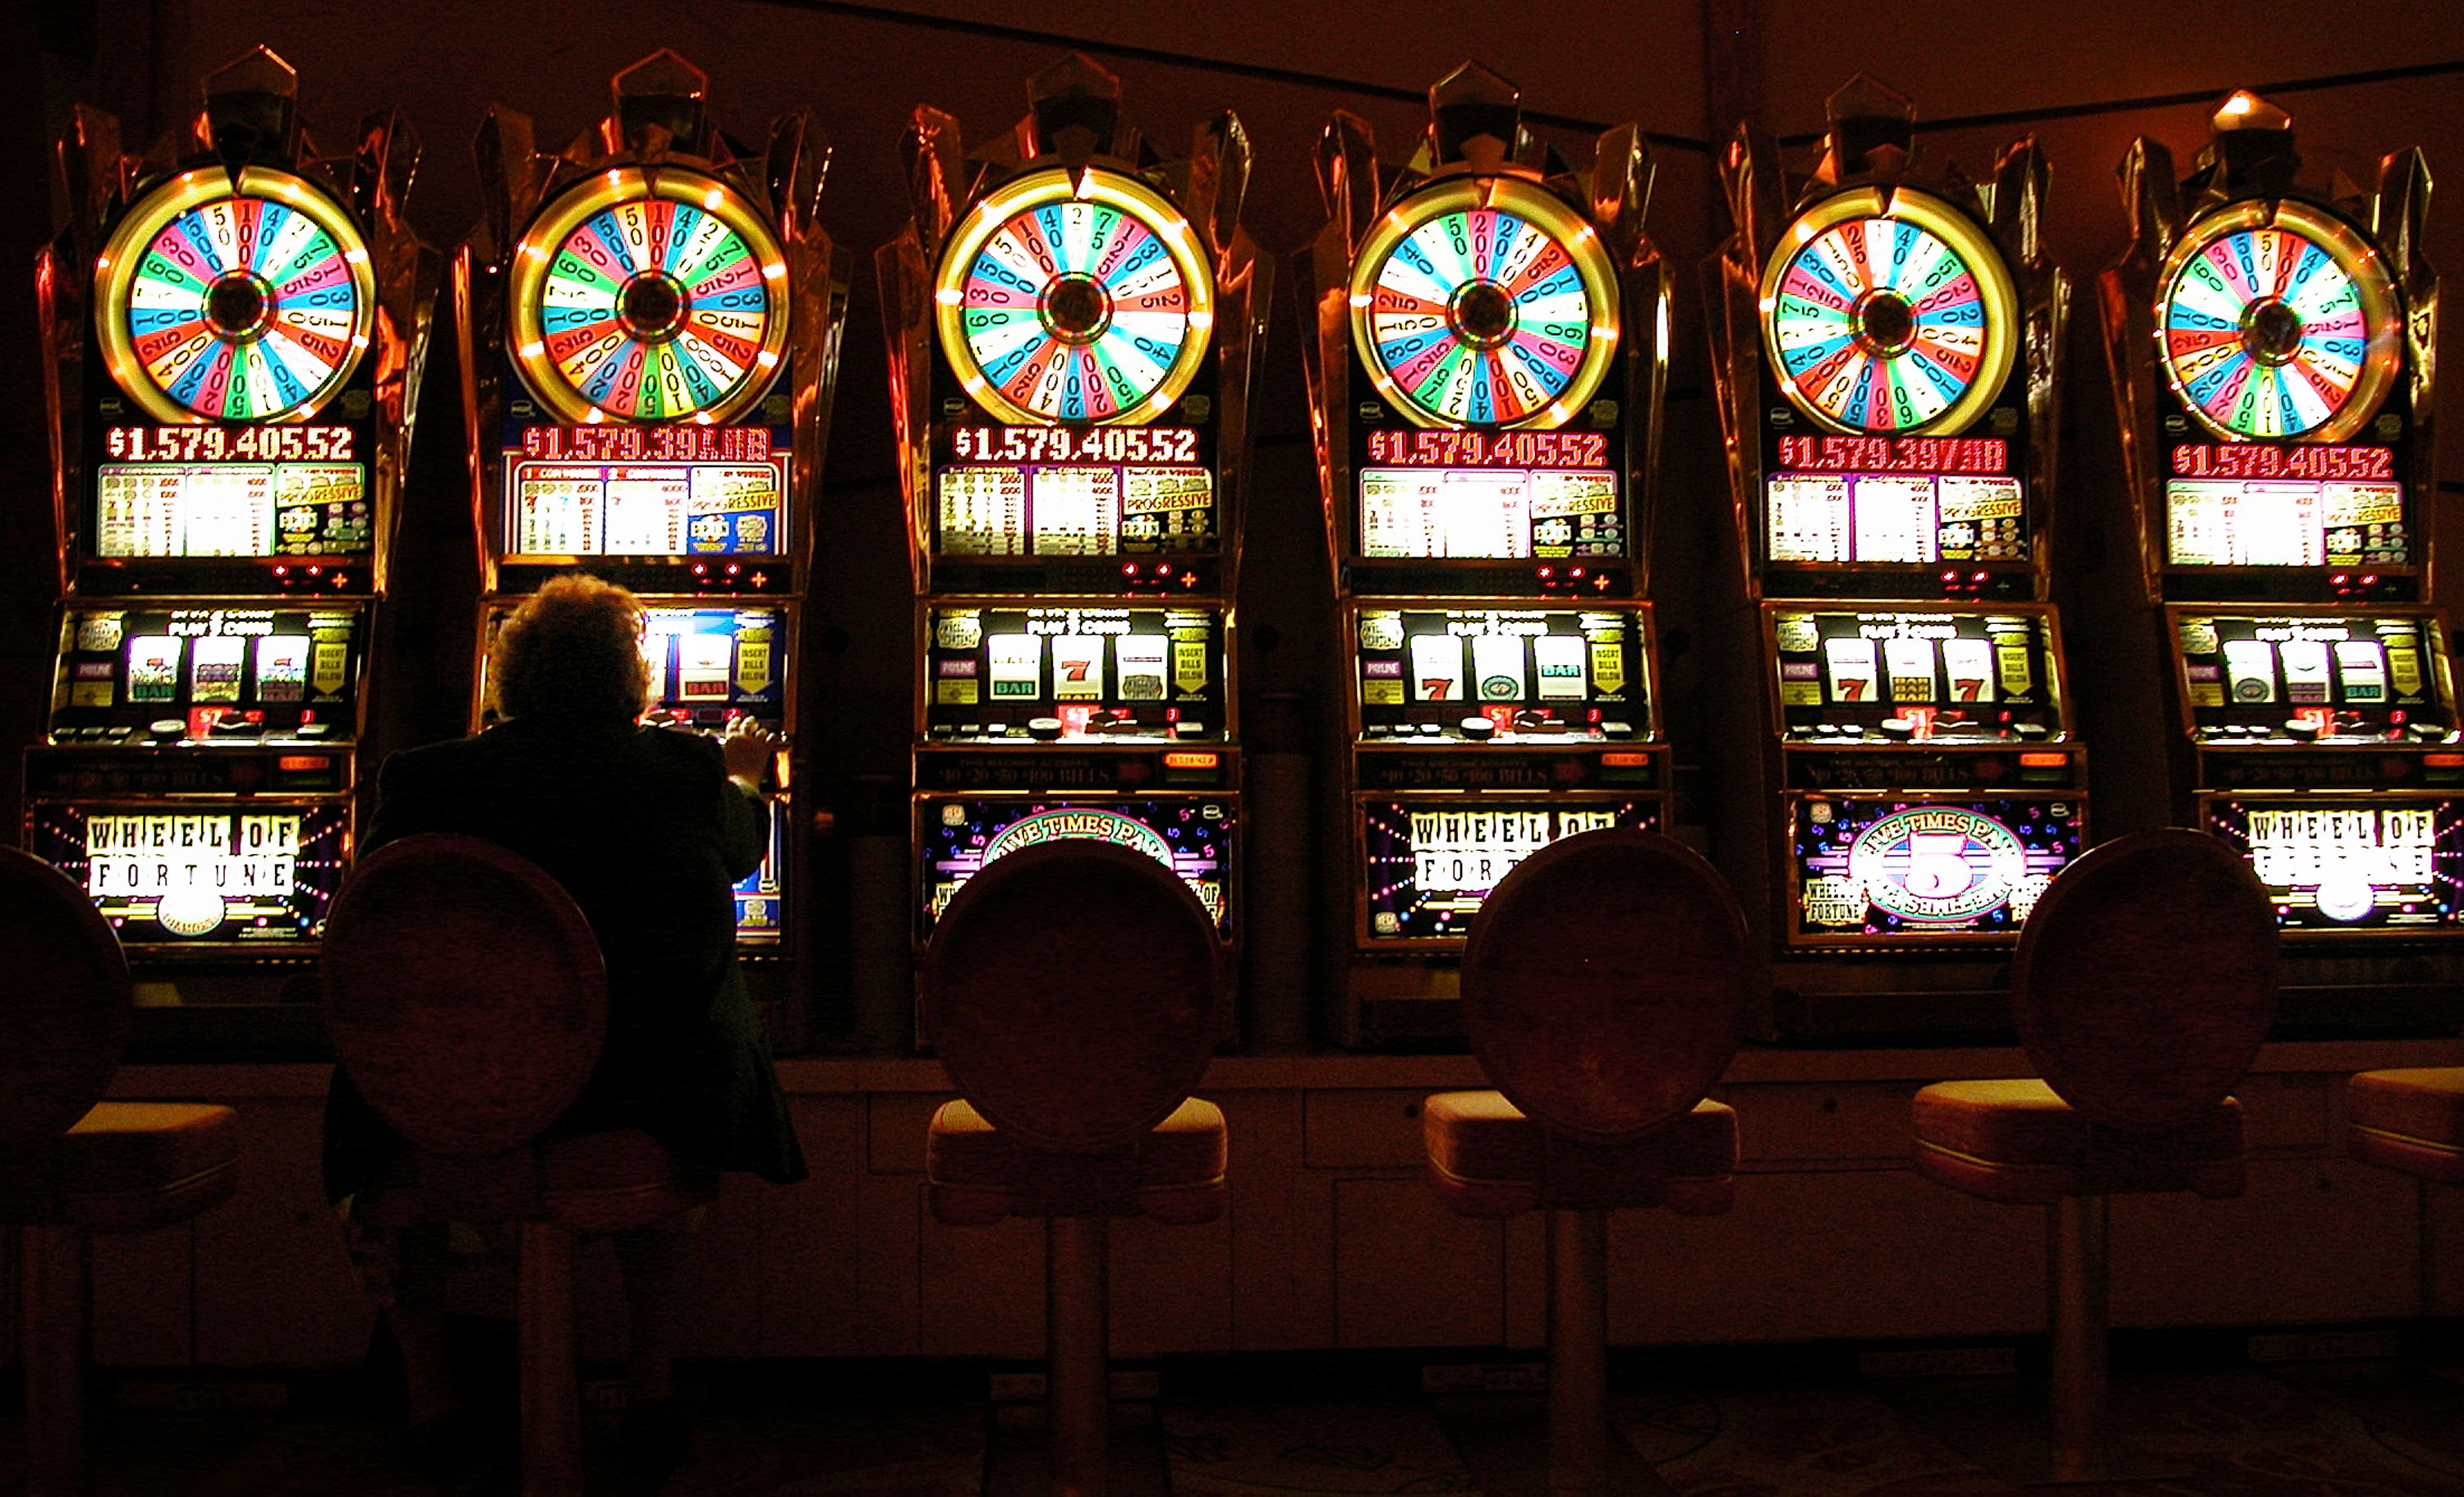 casino project essay By peter blecha posted 8/31/2010 historylinkorg essay 9548 at 10:00 pm on the thursday evening, november 6, 2008, the snoqualmie casino holds its grand opening event located 30 miles east of downtown the casino -- a dream project for the snoqualmie tribe --is also one that was a long time in the making.